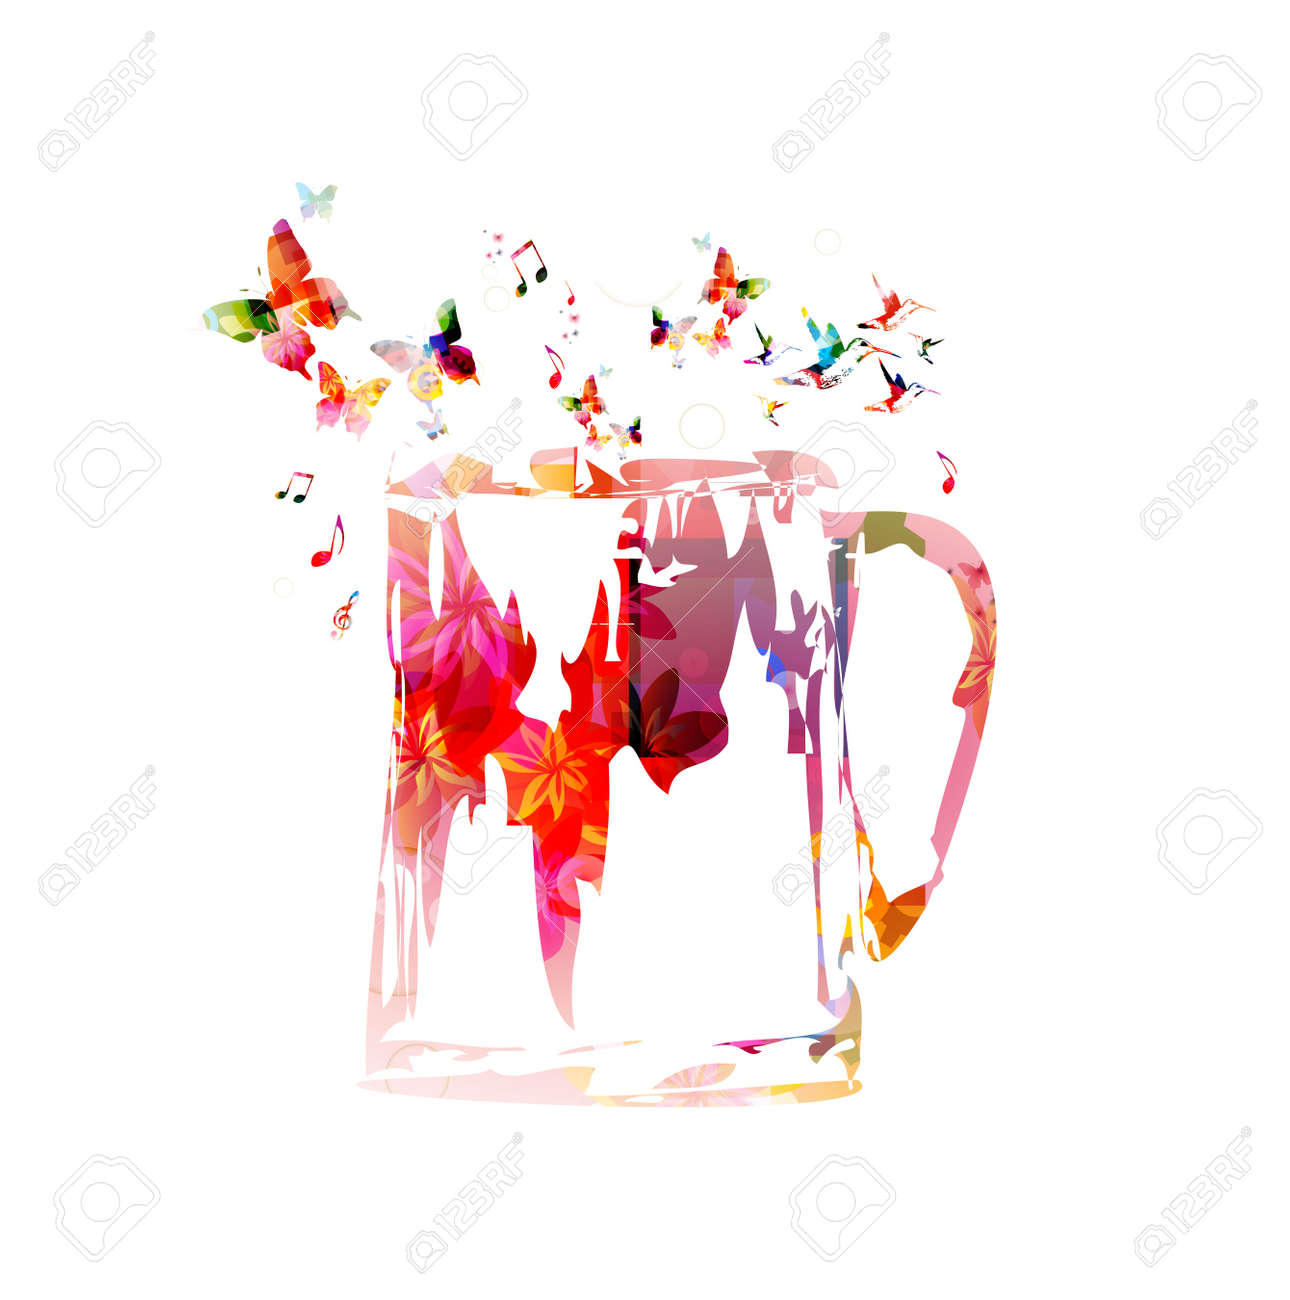 colorful beer mug design with butterflies background royalty free cliparts vectors and stock illustration image 38117084 colorful beer mug design with butterflies background